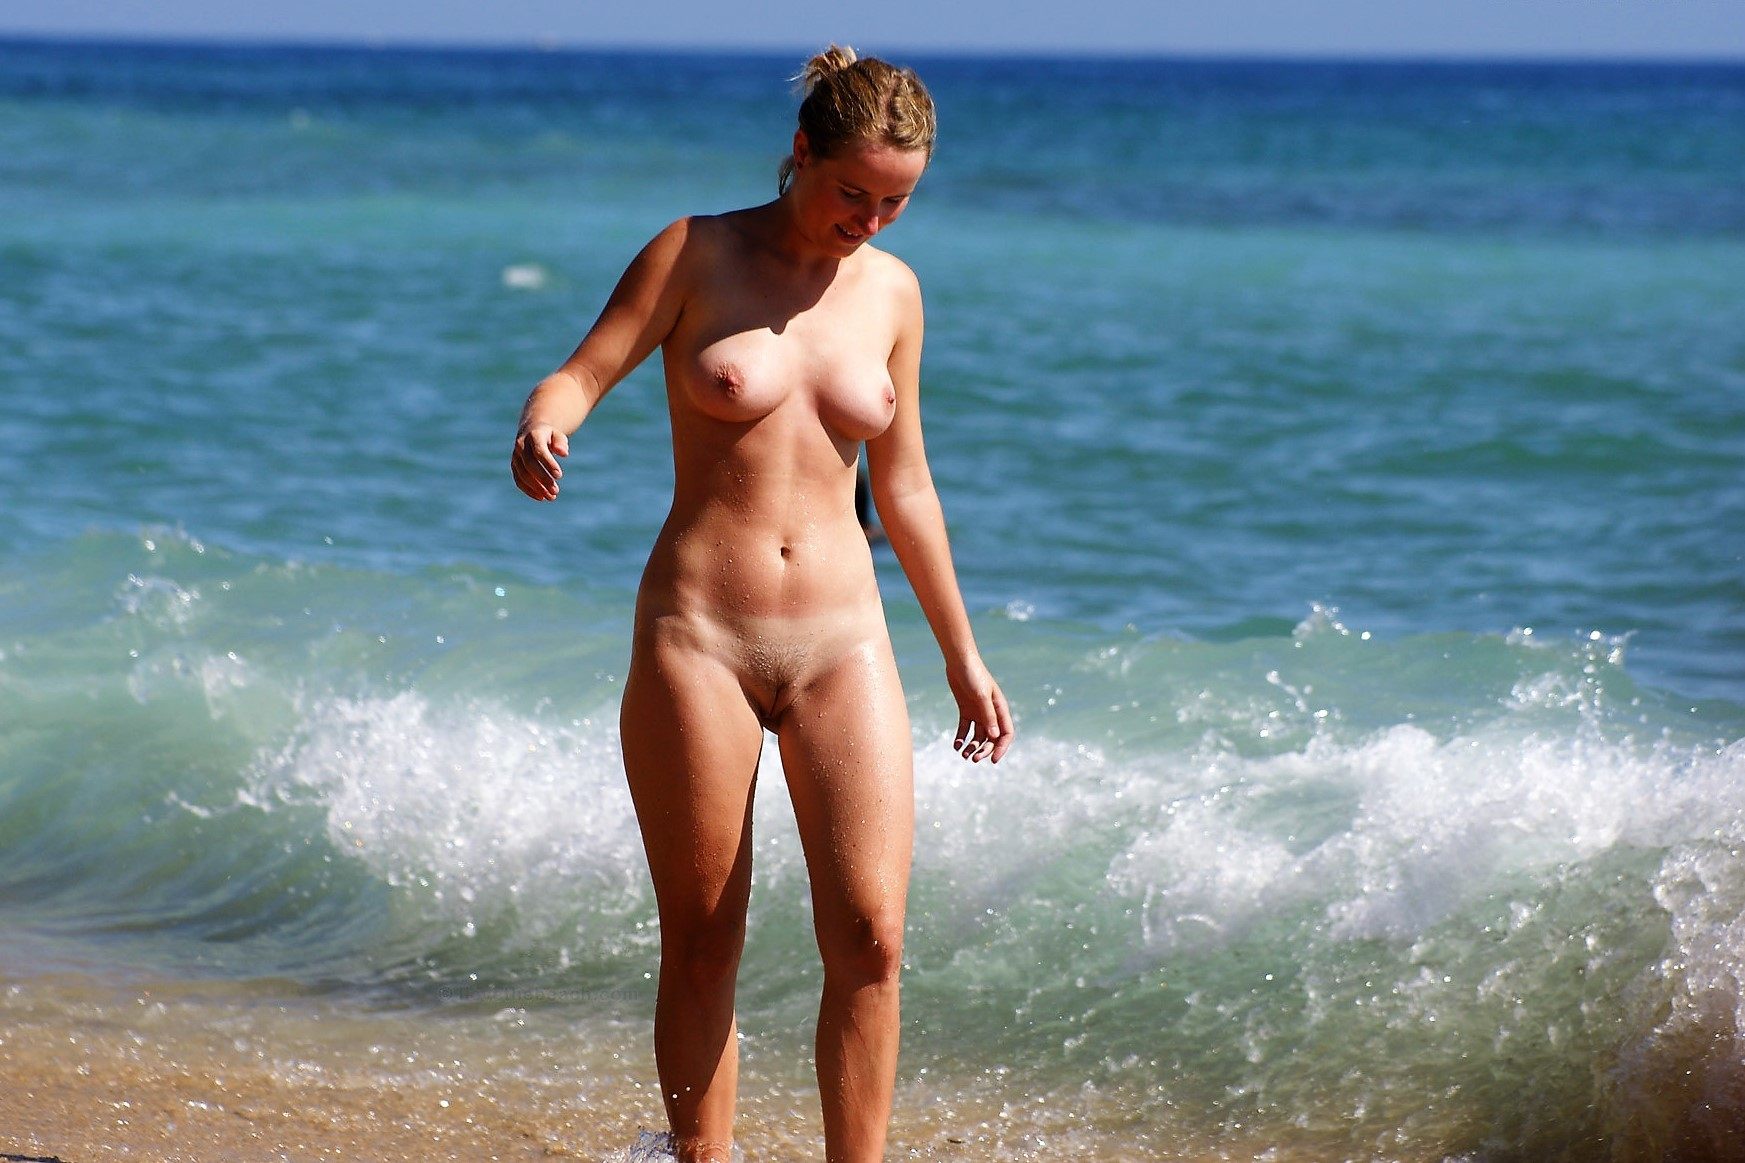 Young naked woman relaxing